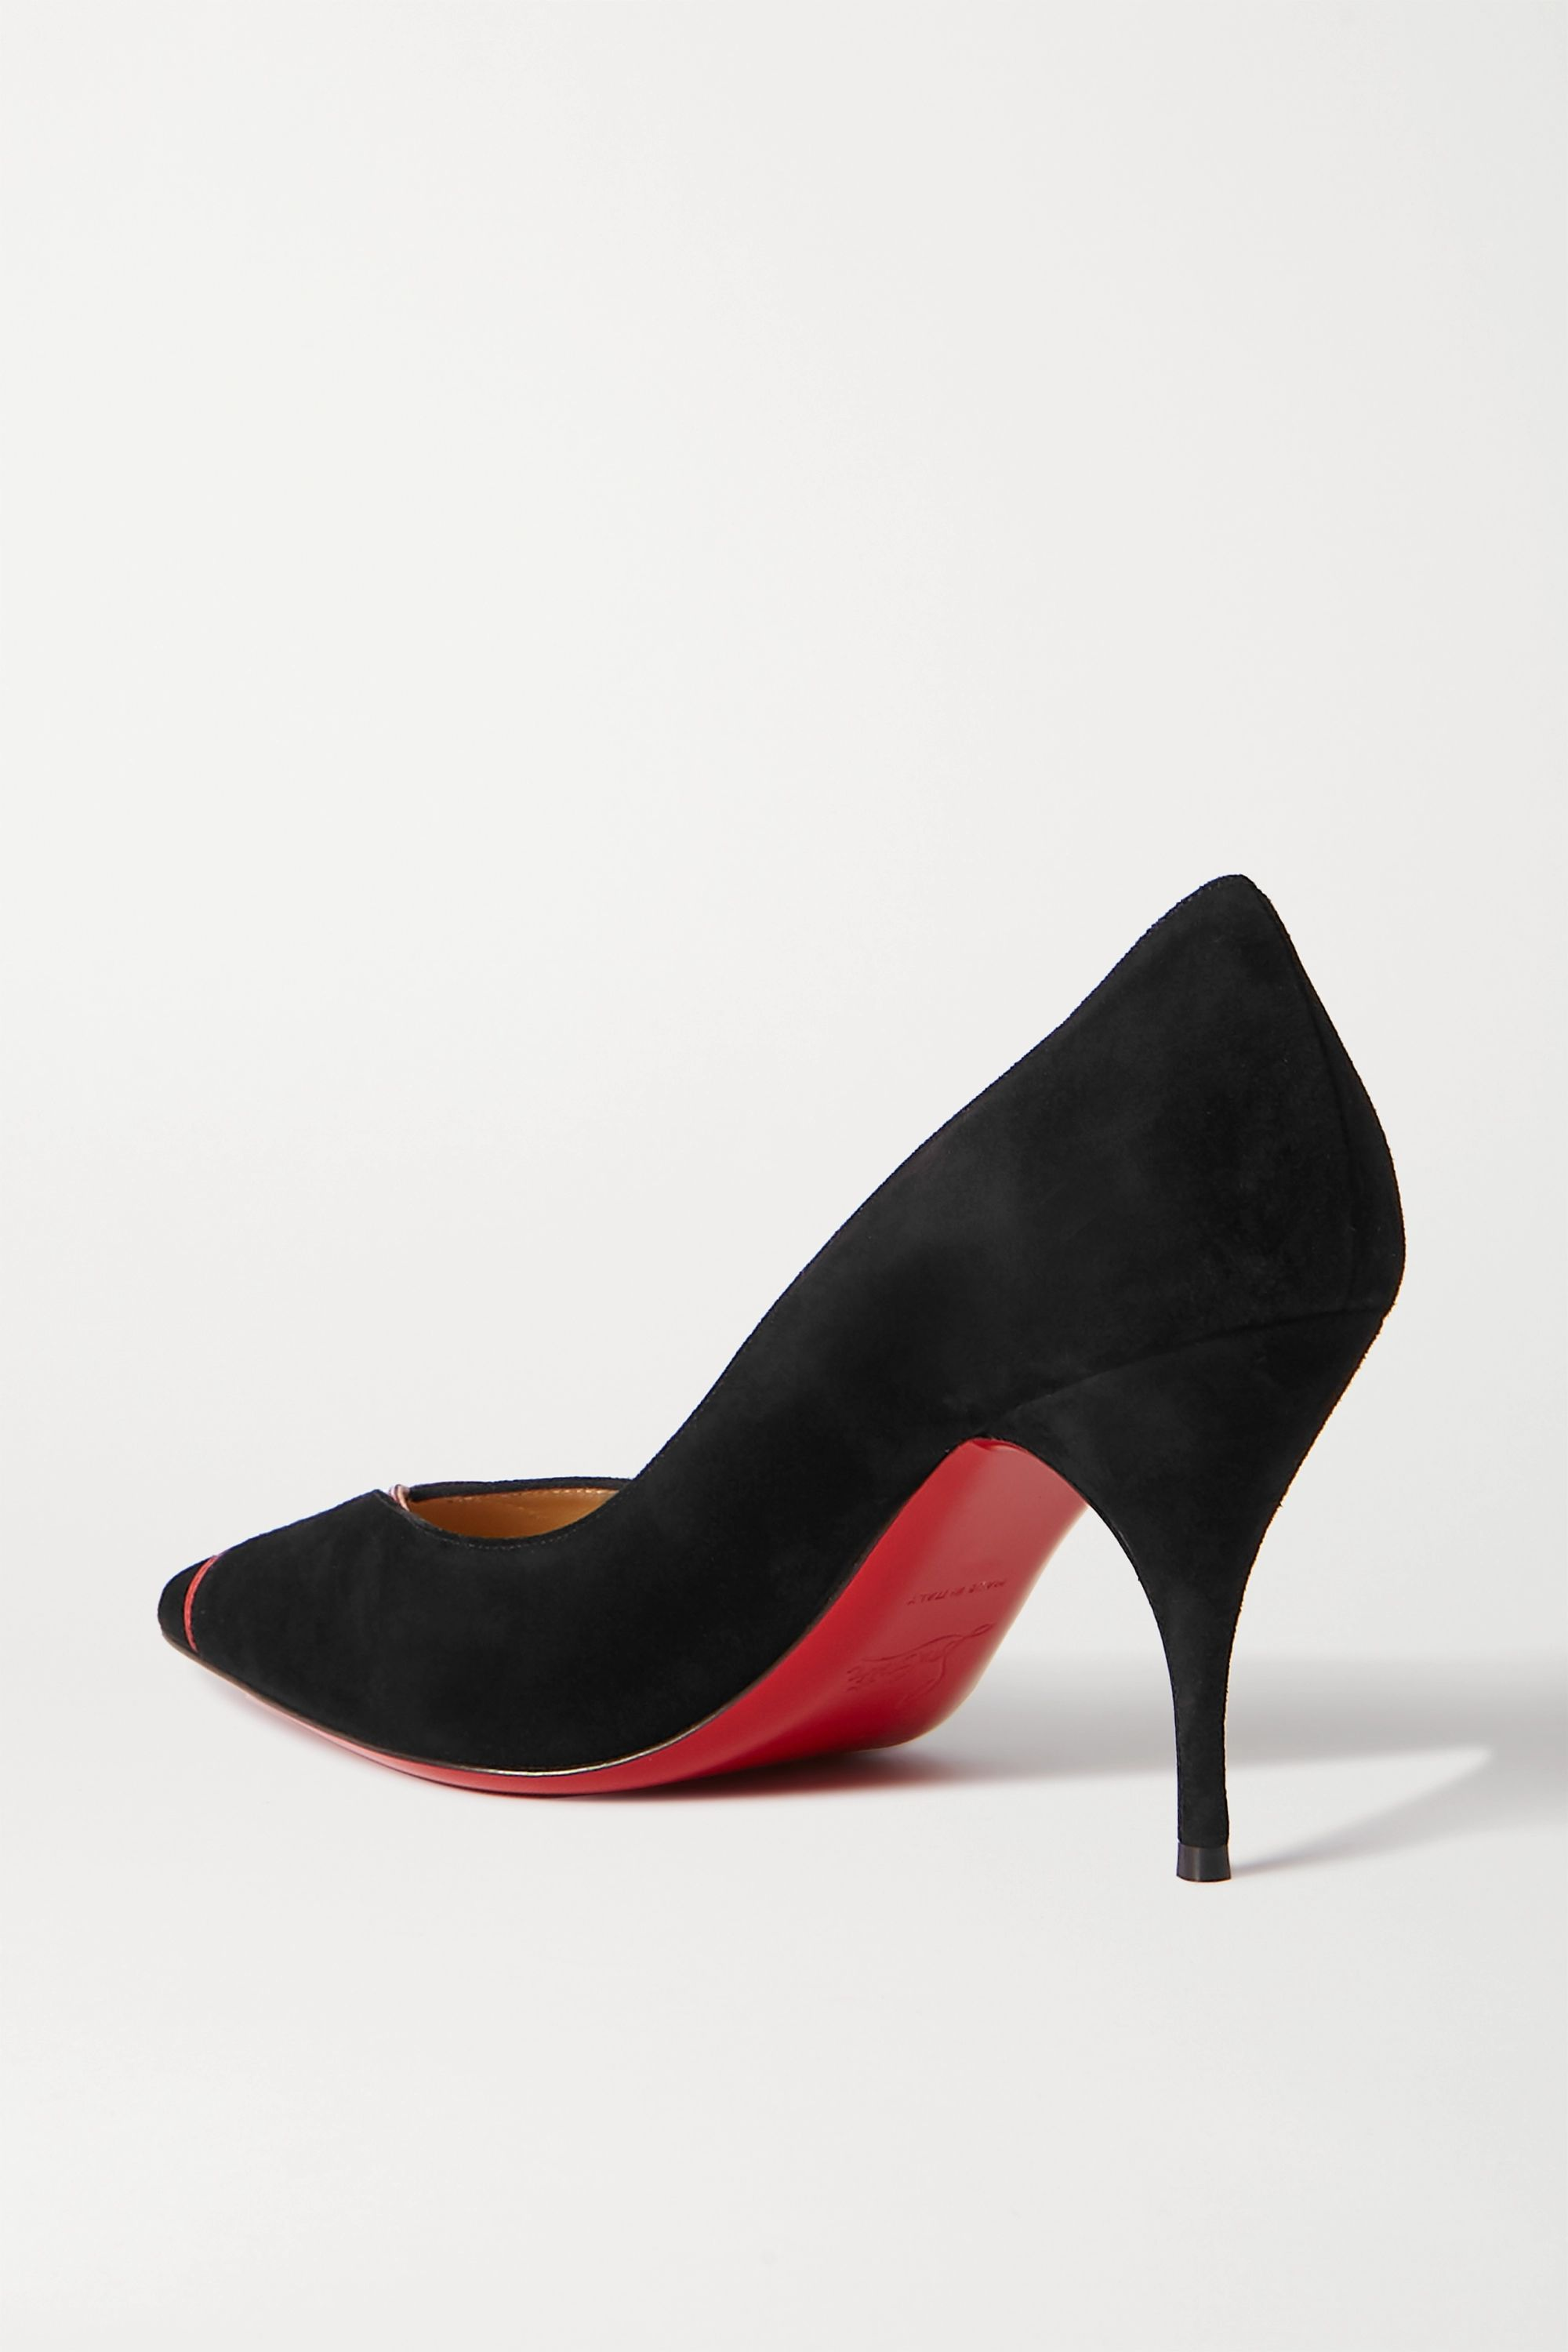 Christian Louboutin CL 80 patent leather-trimmed suede pumps